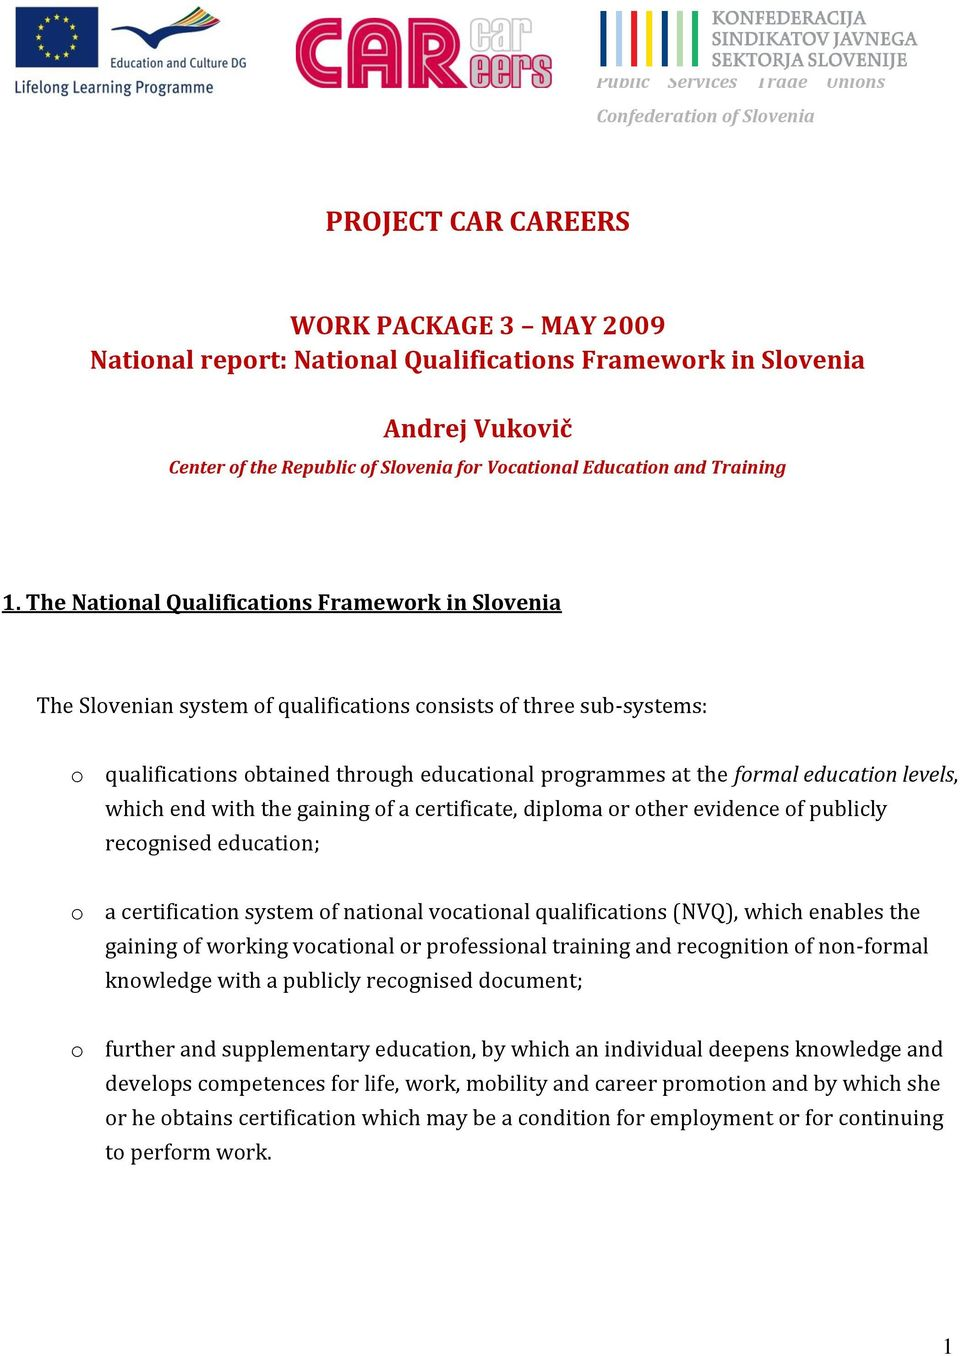 PROJECT CAR CAREERS  WORK PACKAGE 3 MAY 2009 National report